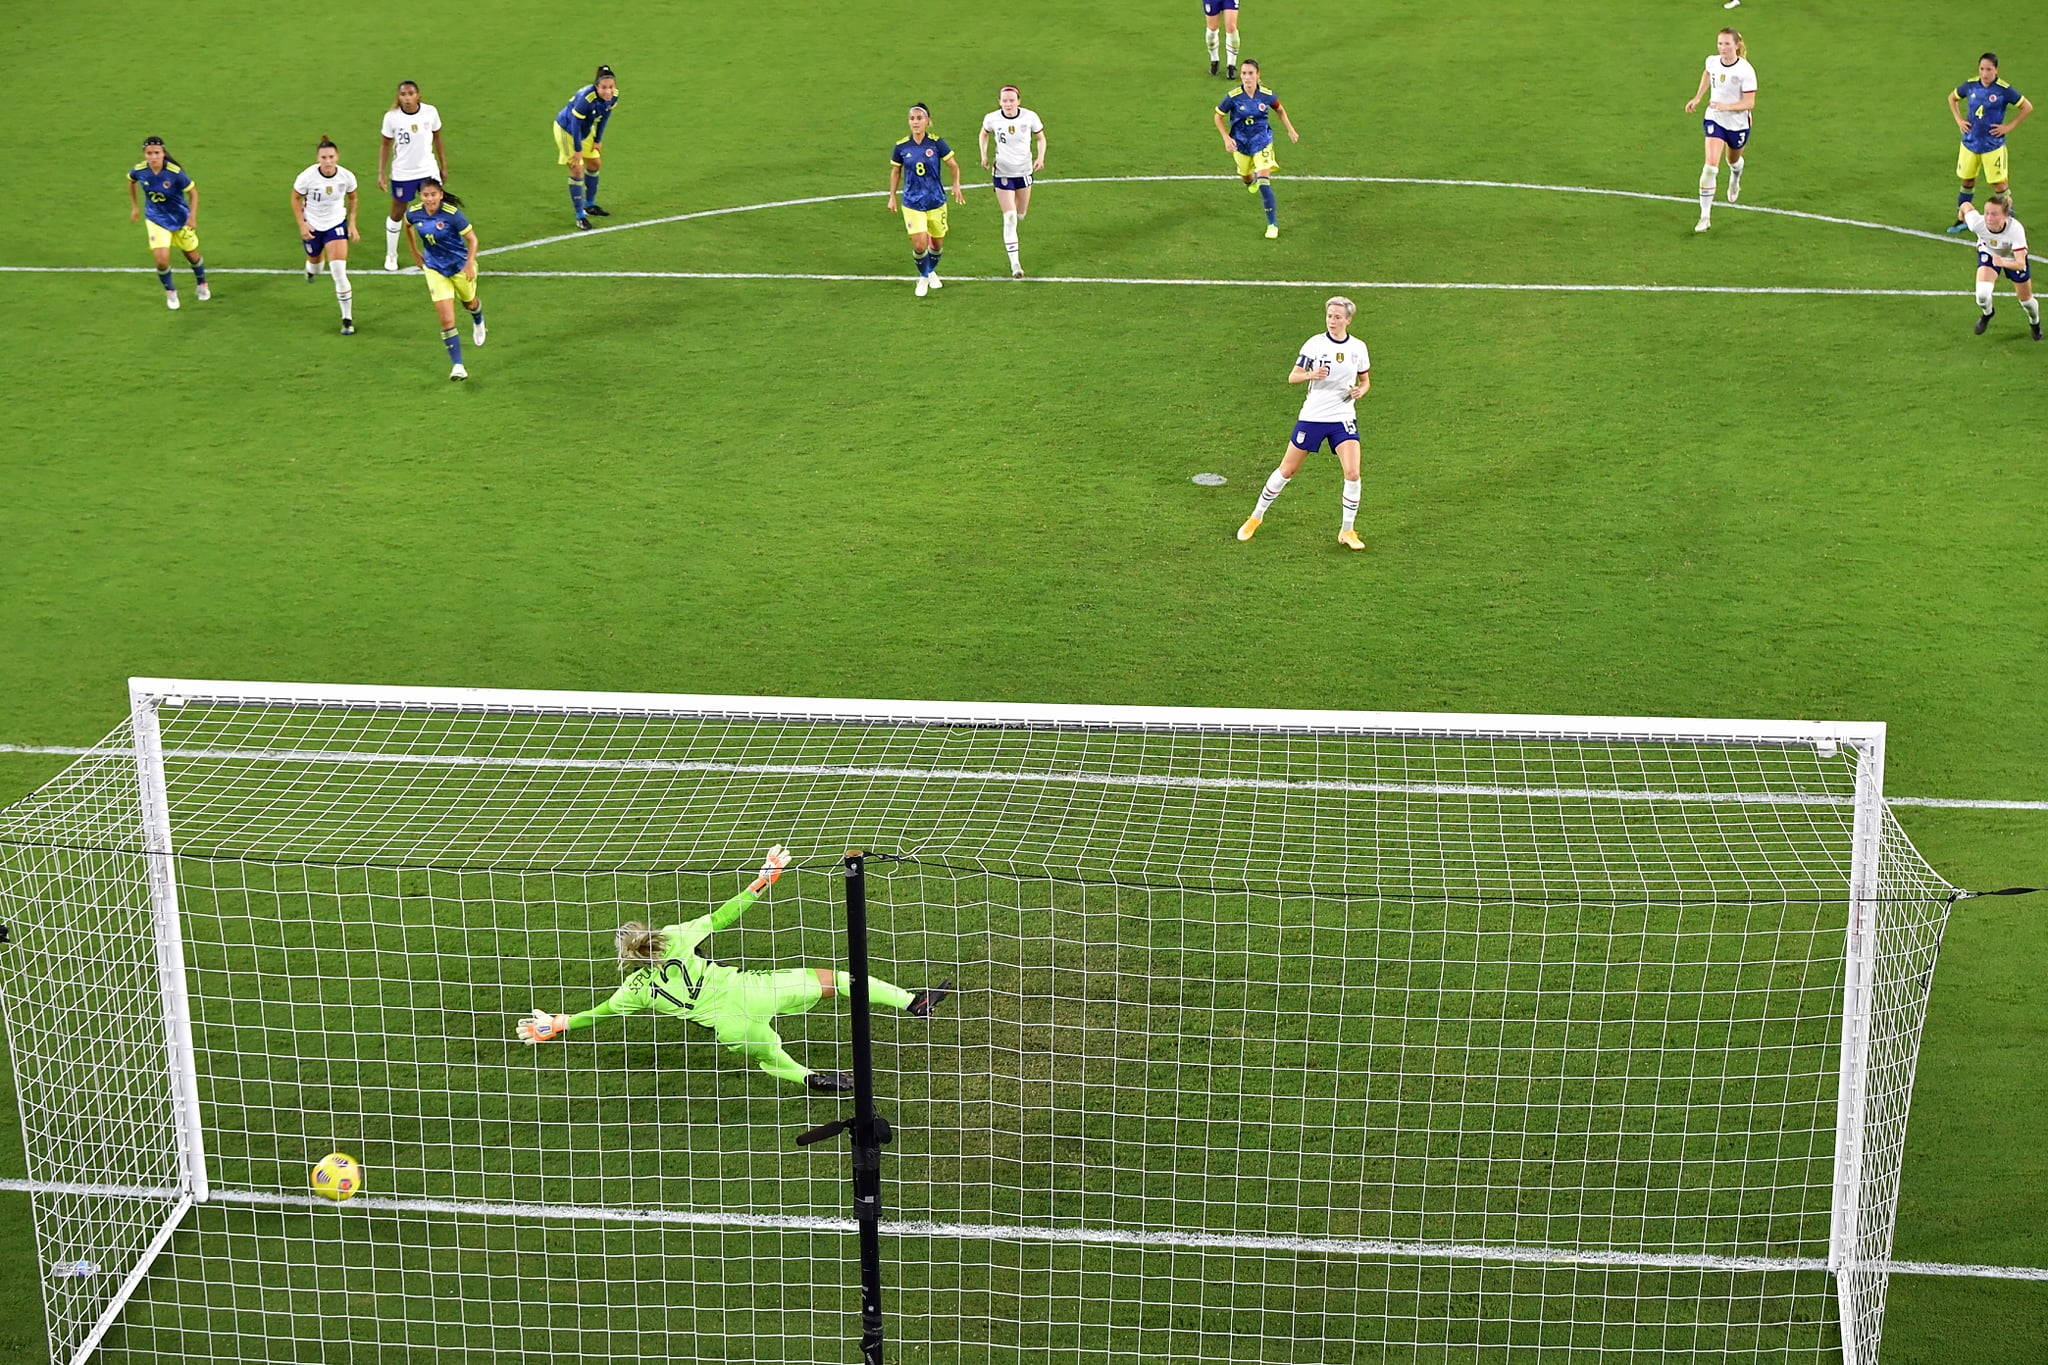 USWNT's Megan Rapinoe nails a goal against Colombia in their second friendly match at Exploria Stadium Friday, January 22, 2021. Photo: Harry Castiblanco/Florida National News.